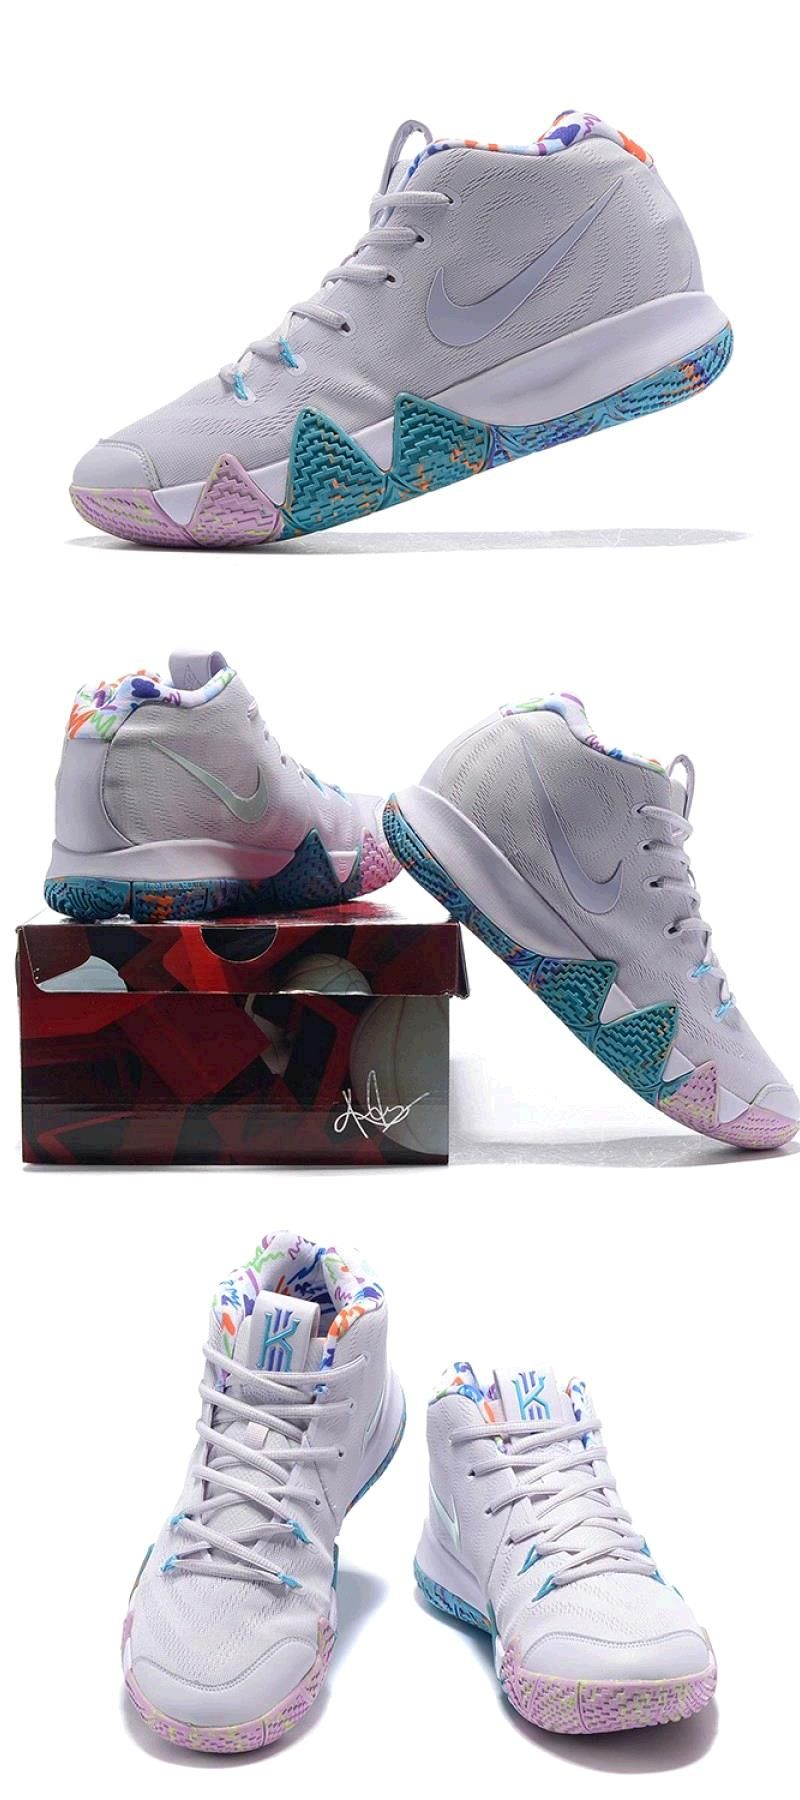 easter kyrie 4